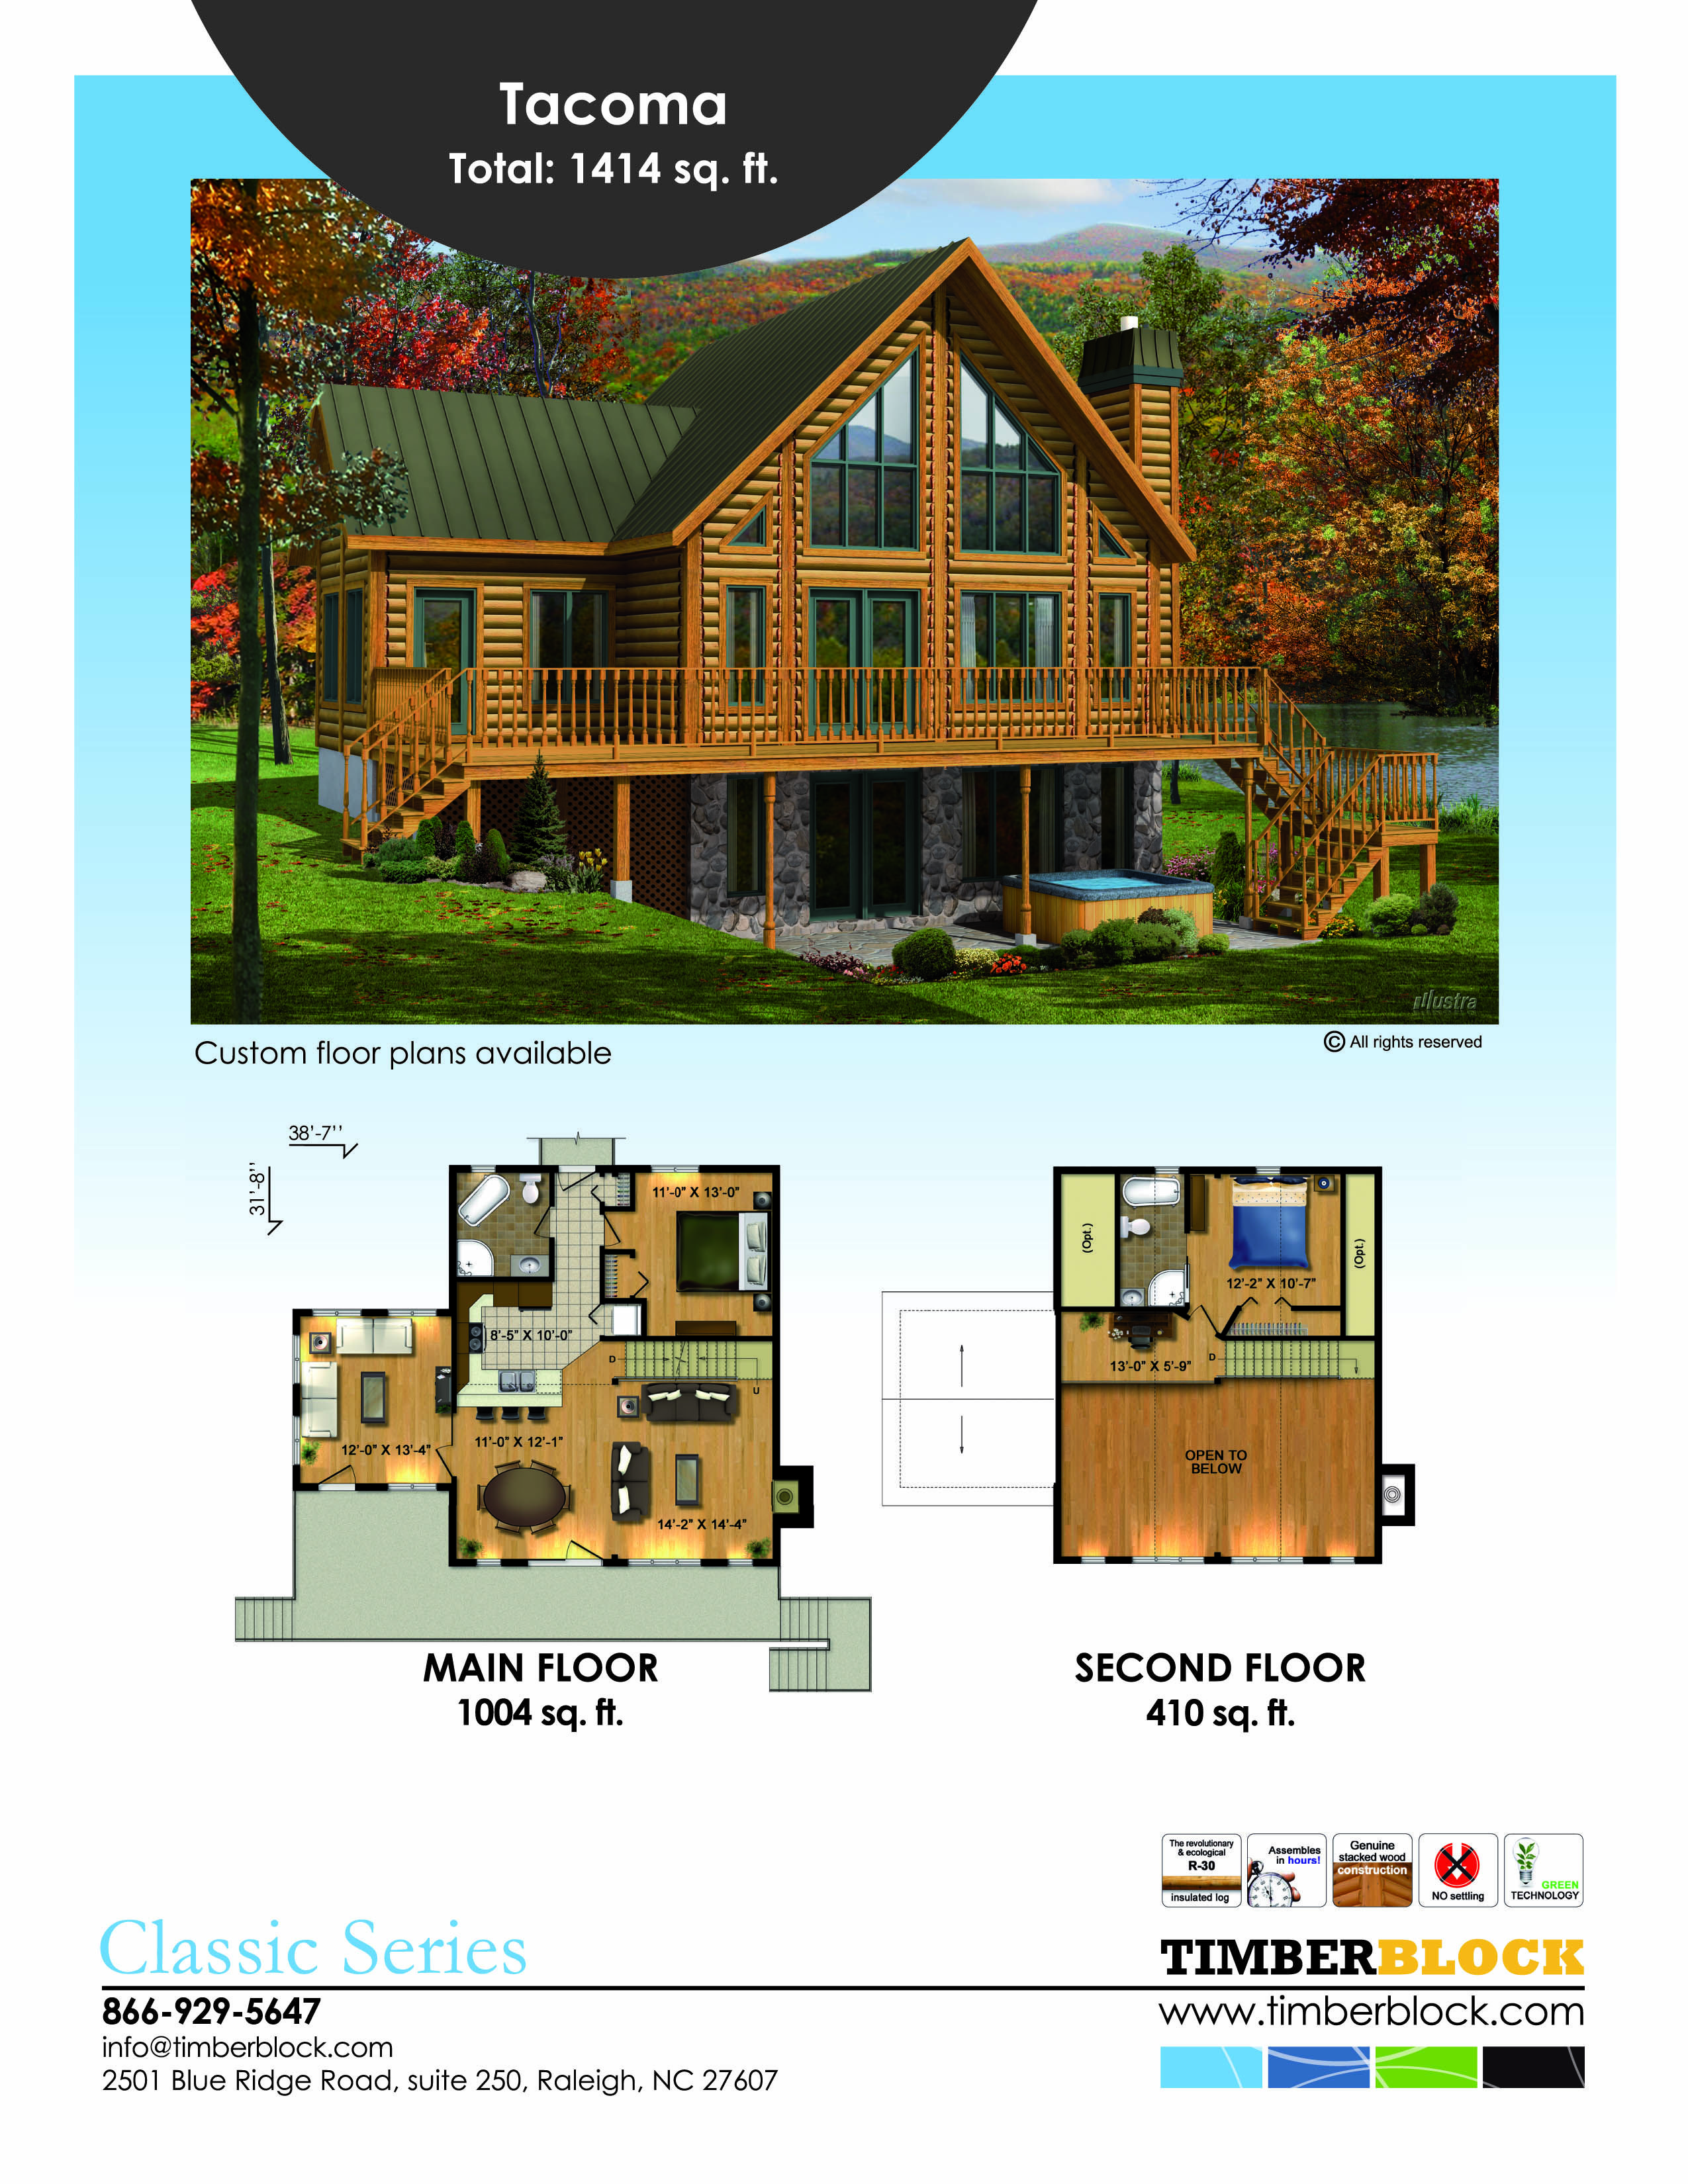 Pin By Timber Block On Floor Plans Timber Block Engineered Wood Homes Lake House Plans Log Cabin Plans Cabin Plans